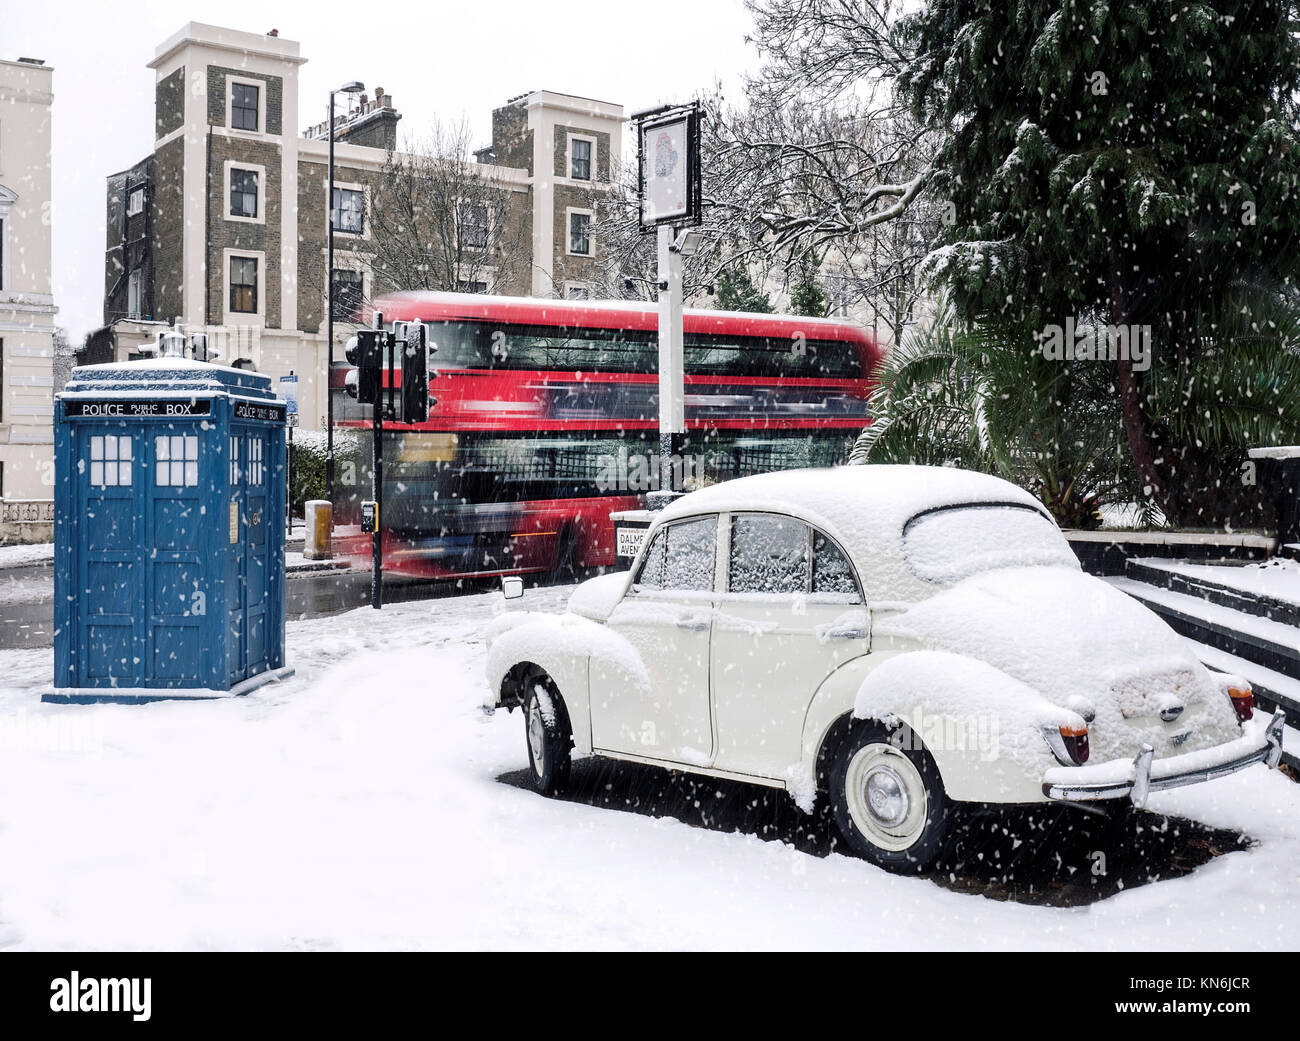 Dr Who Tardis in North London UK - Stock Image